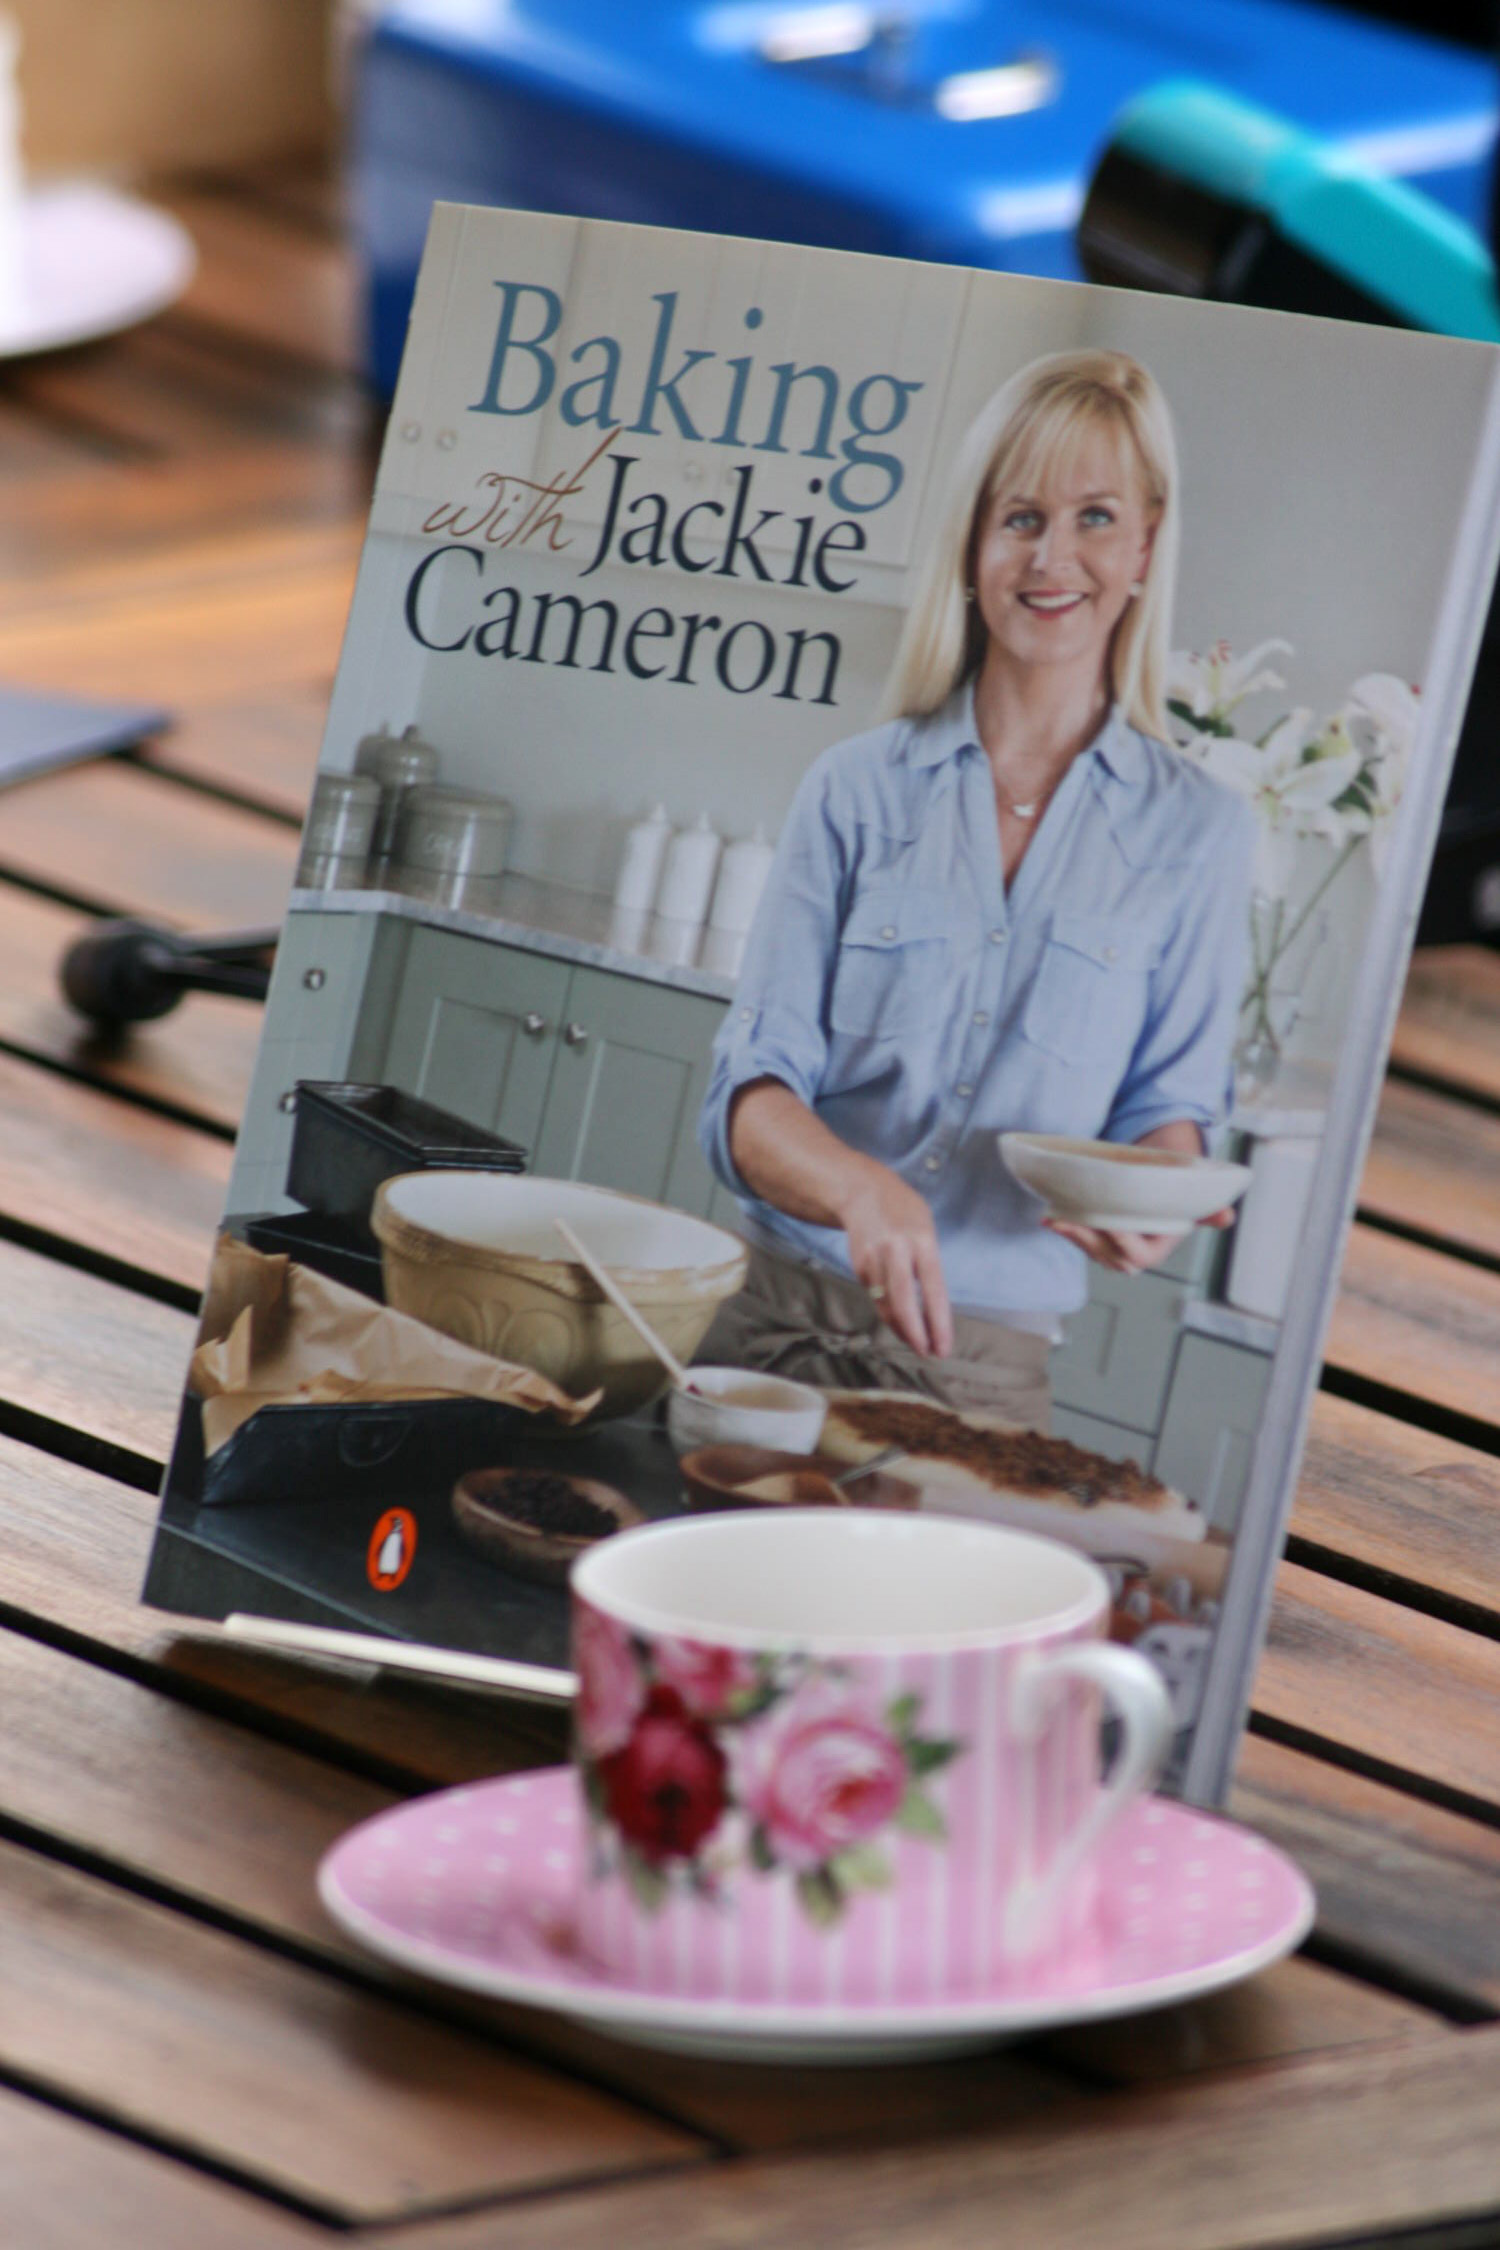 baking-with-jackie-cameron-launch-22.JPG